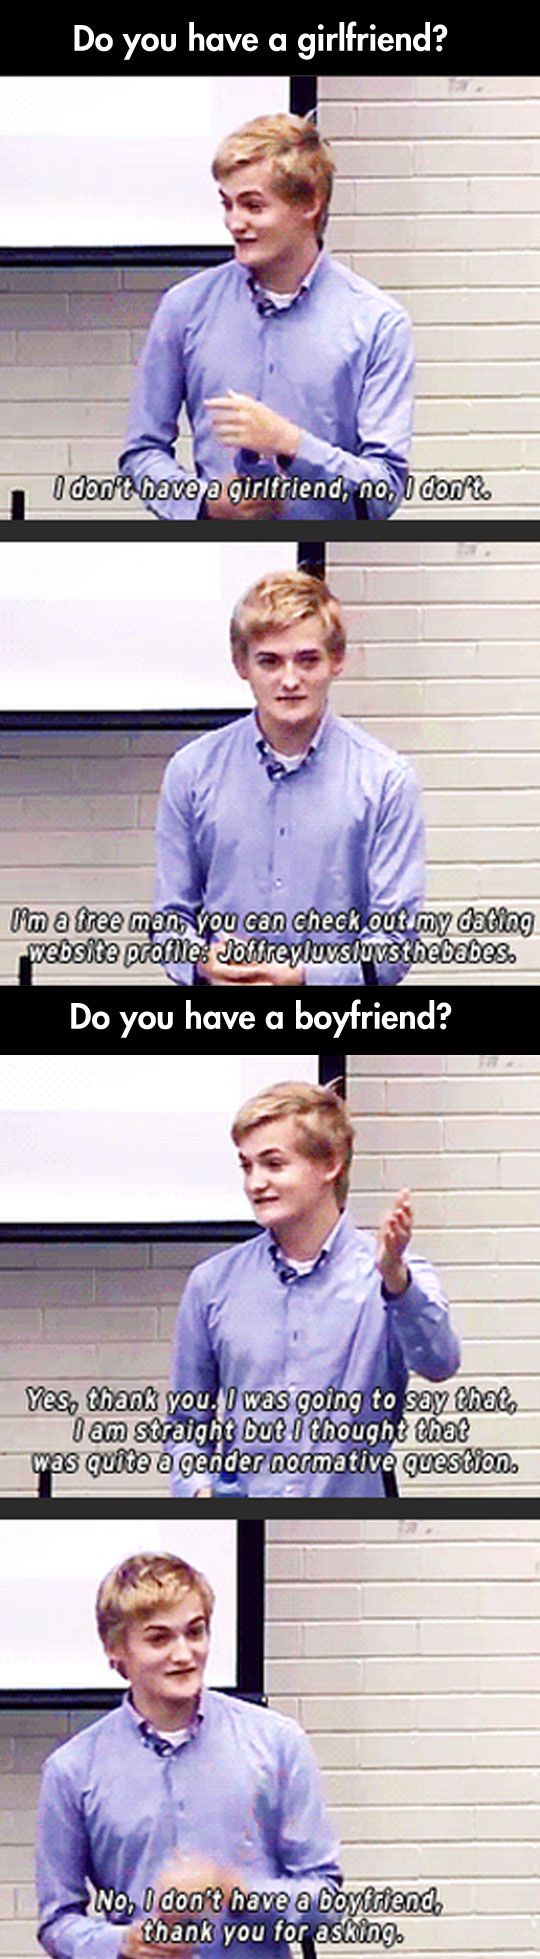 Behold Jack Gleeson, not only is he a phenomenal actor, but he seems like a pretty cool guy.